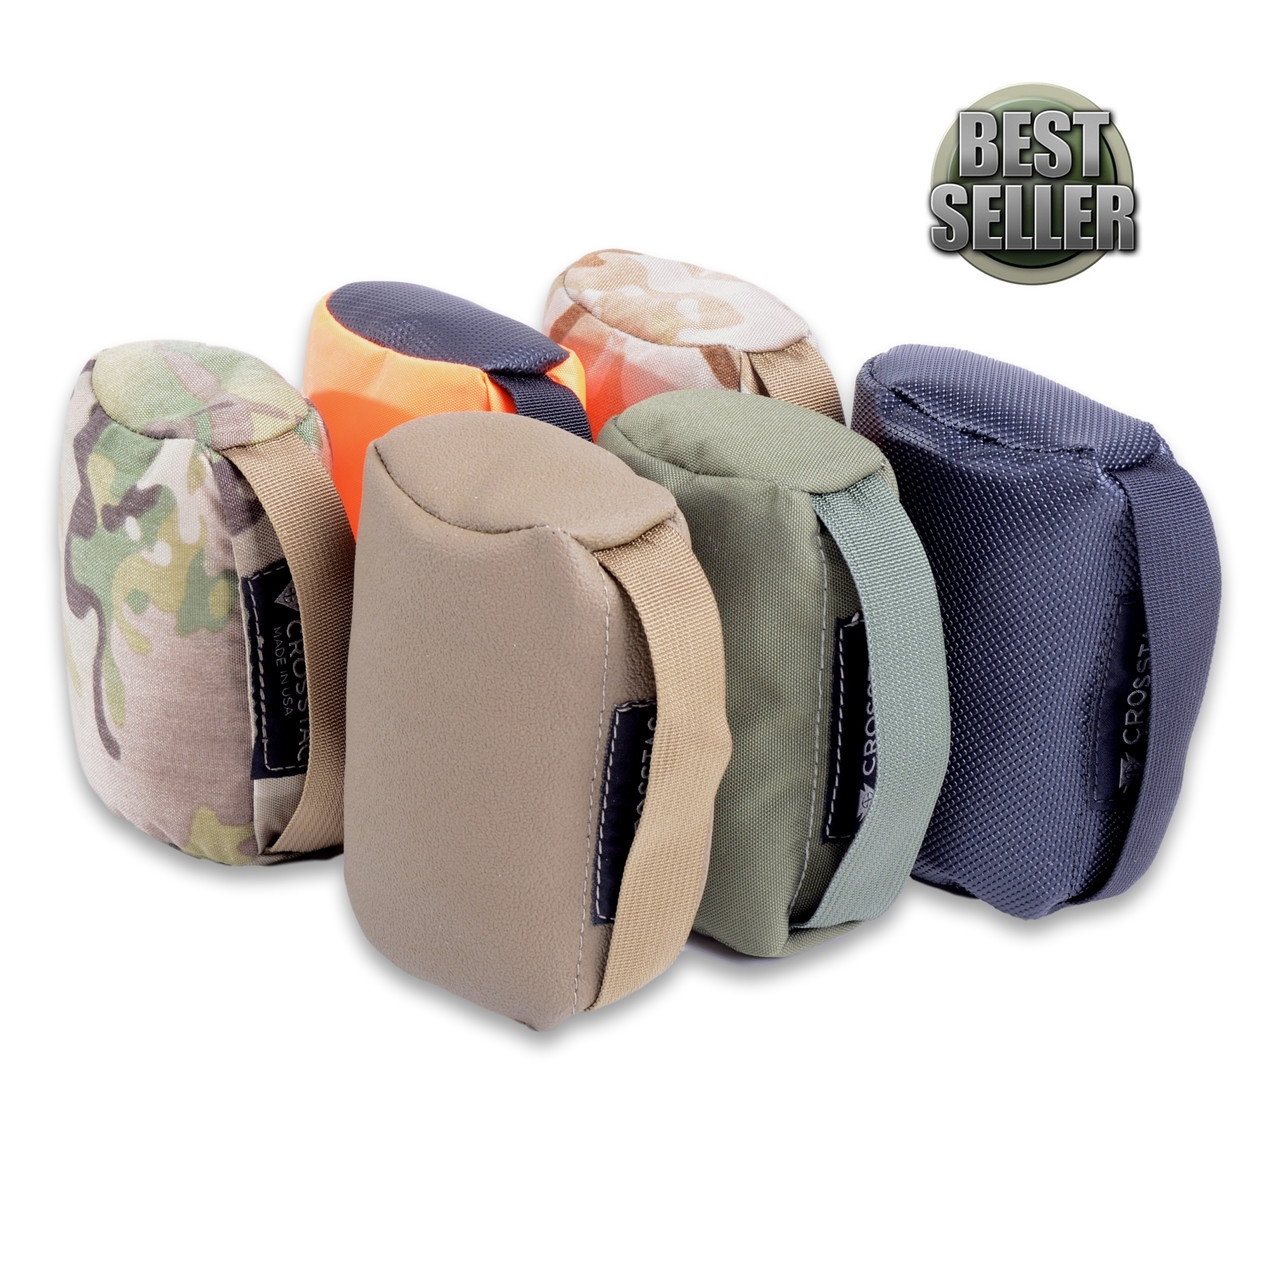 Fine Ultralight Tactical Rear Squeeze Bag Creativecarmelina Interior Chair Design Creativecarmelinacom